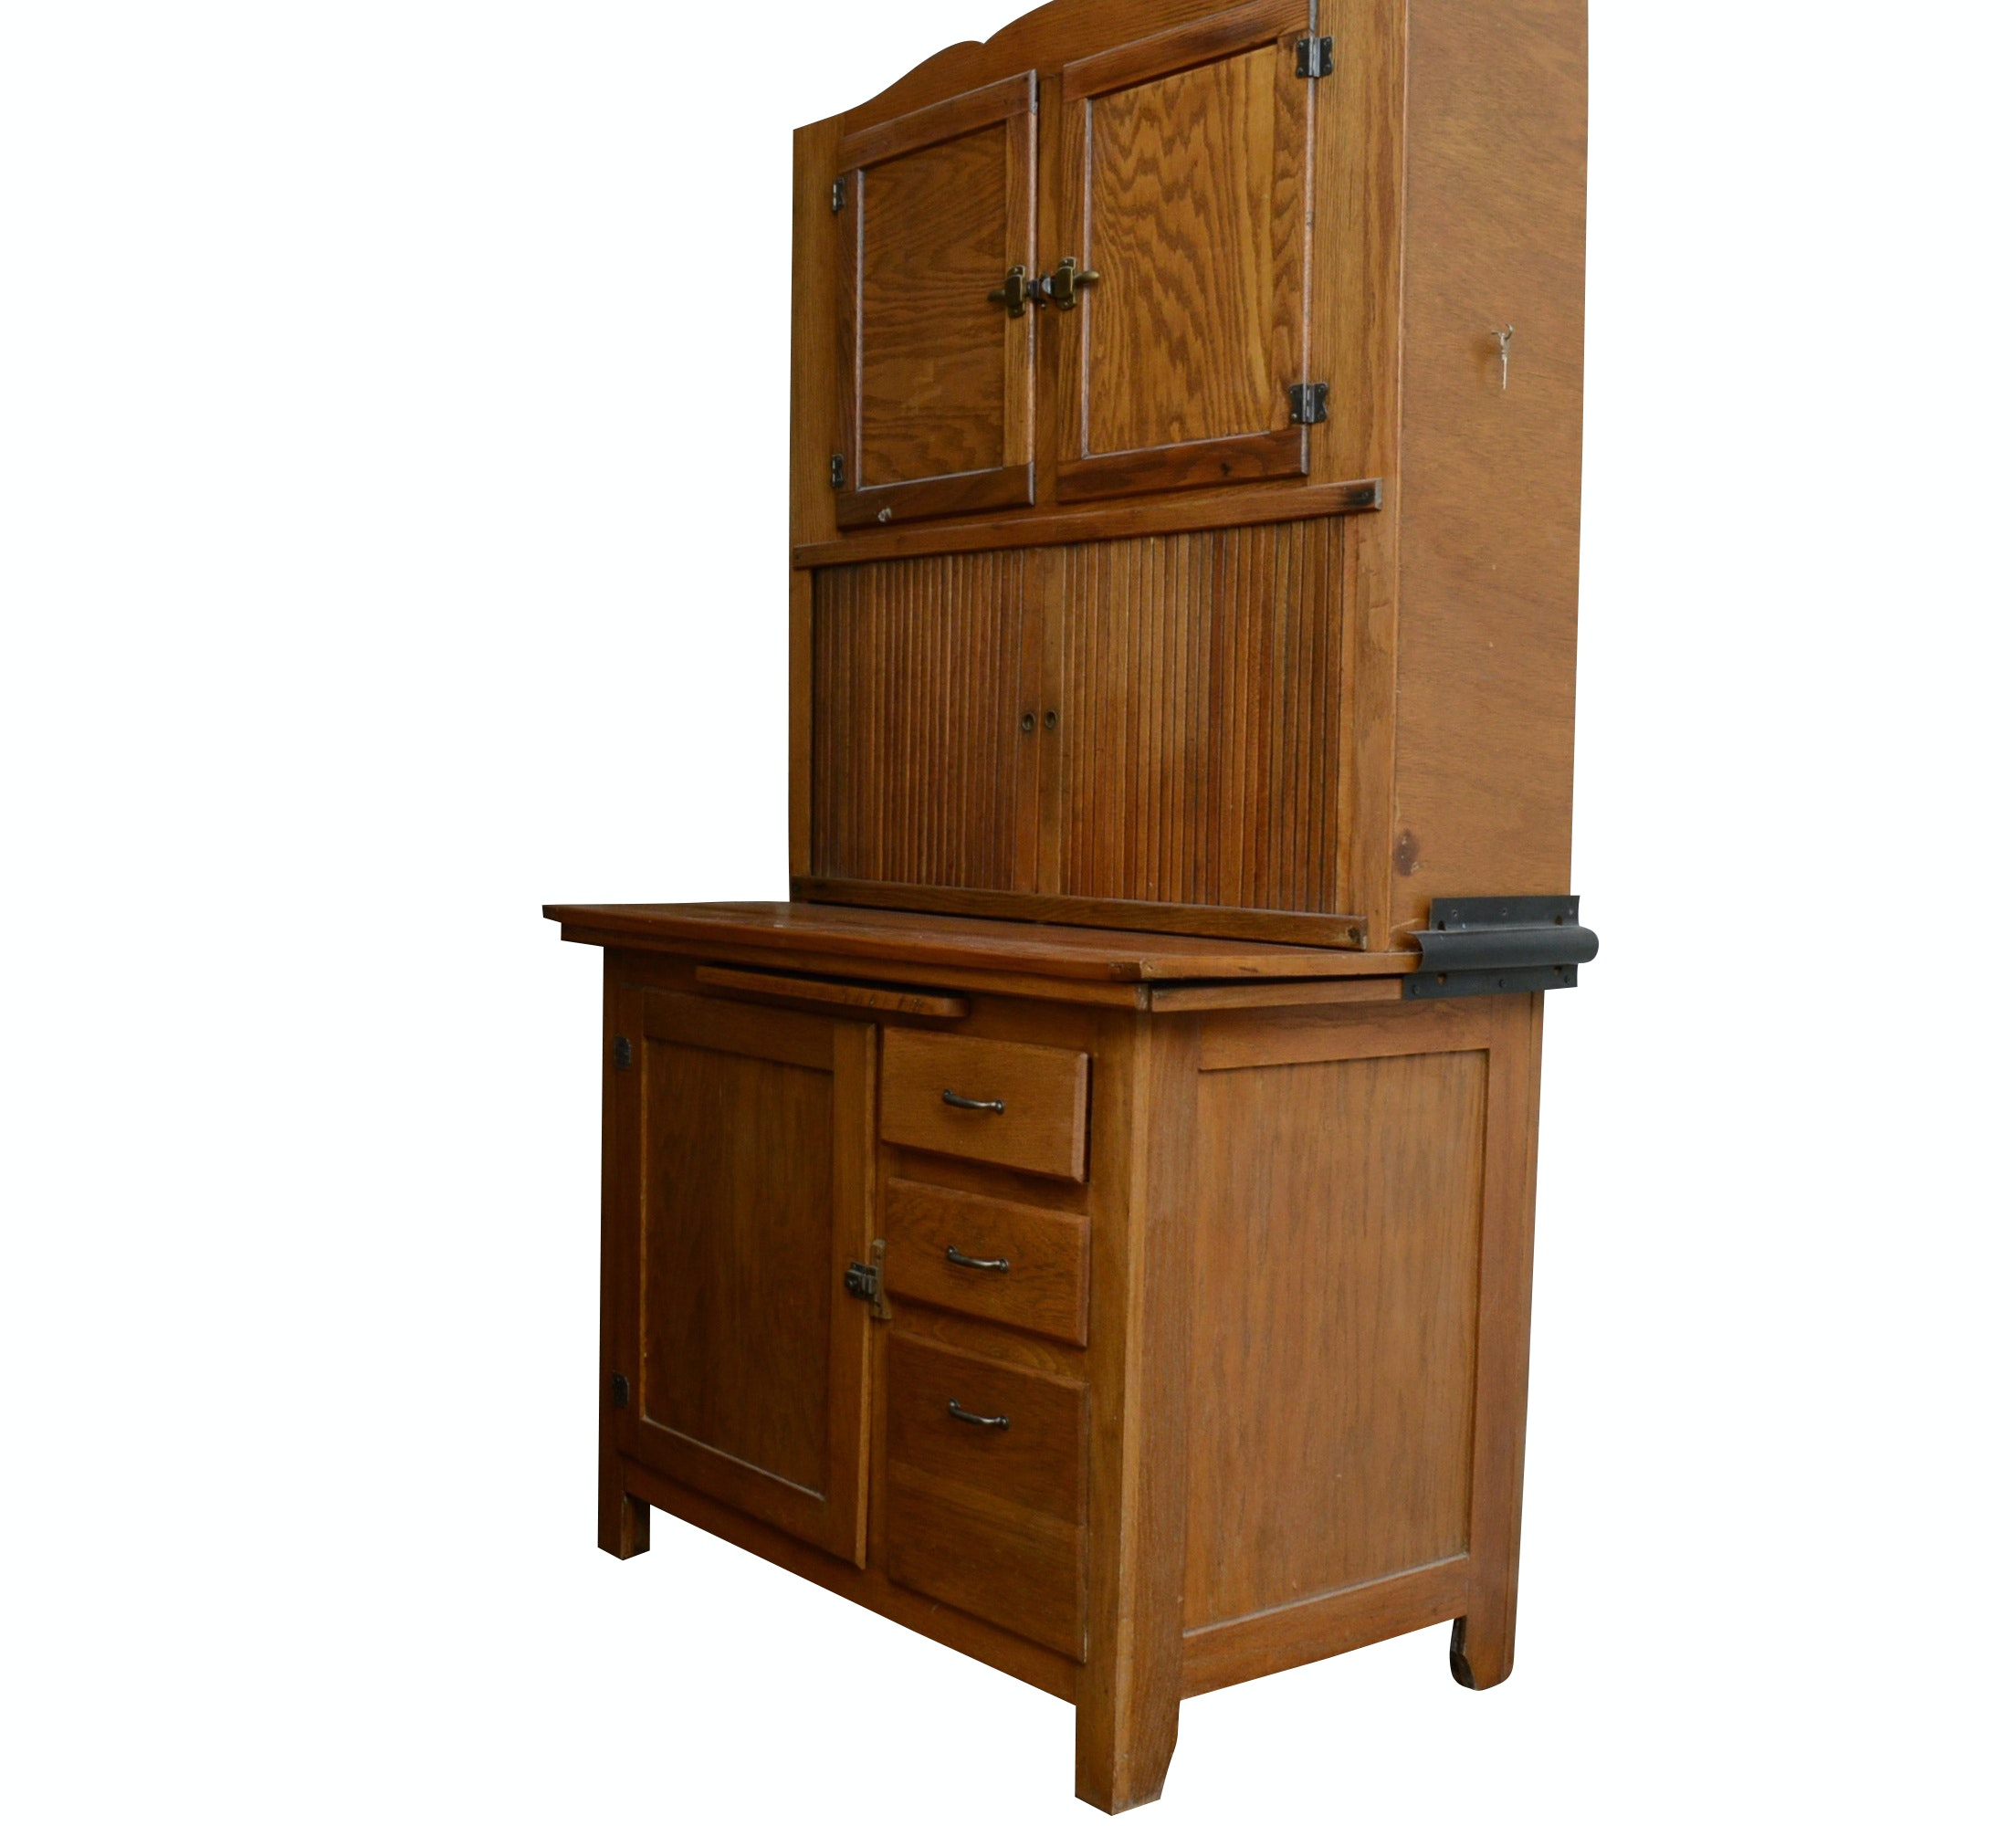 Oak Baker's Cabinet, Early to Mid 20th Century